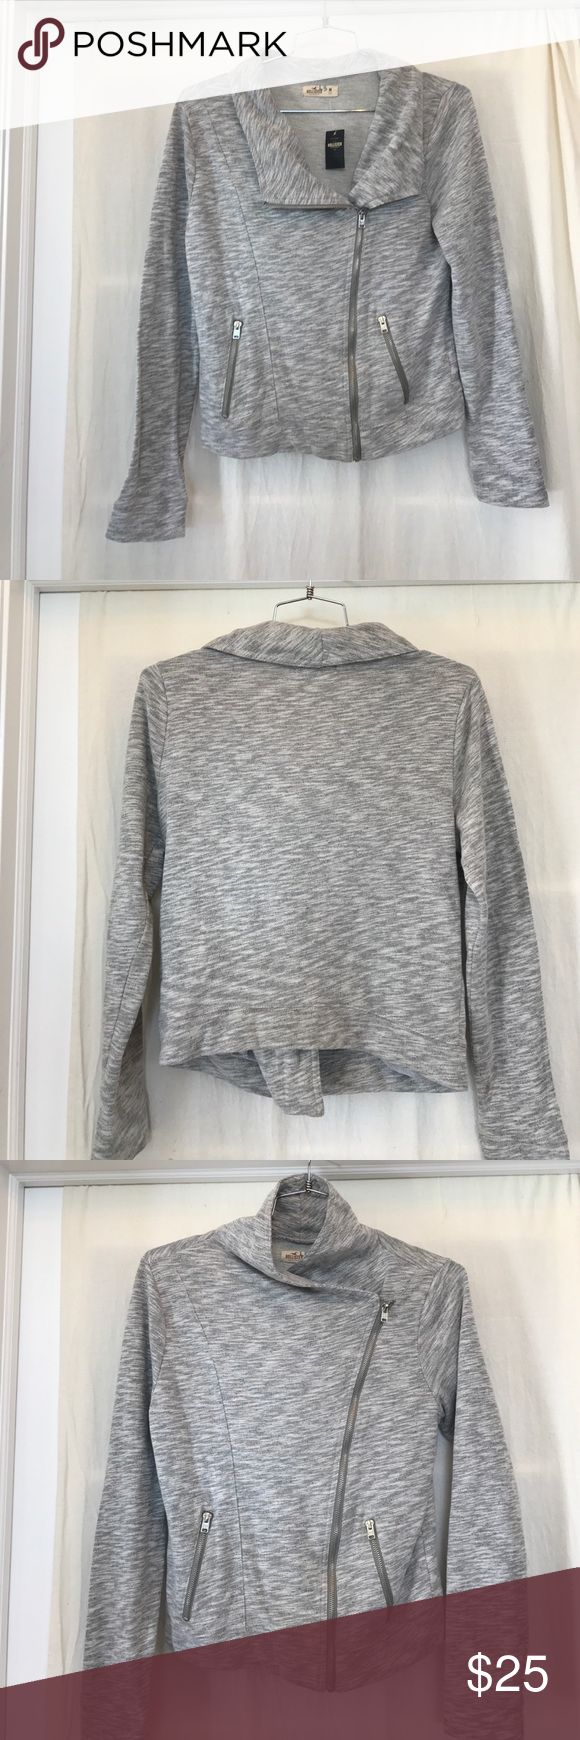 New With Tags Hollister Asymmetrical Jacket. Awesome Hollister jacket. Silver metal zippers. 80% cotton. Gray, size M. Brand new! Hollister Jackets & Coats